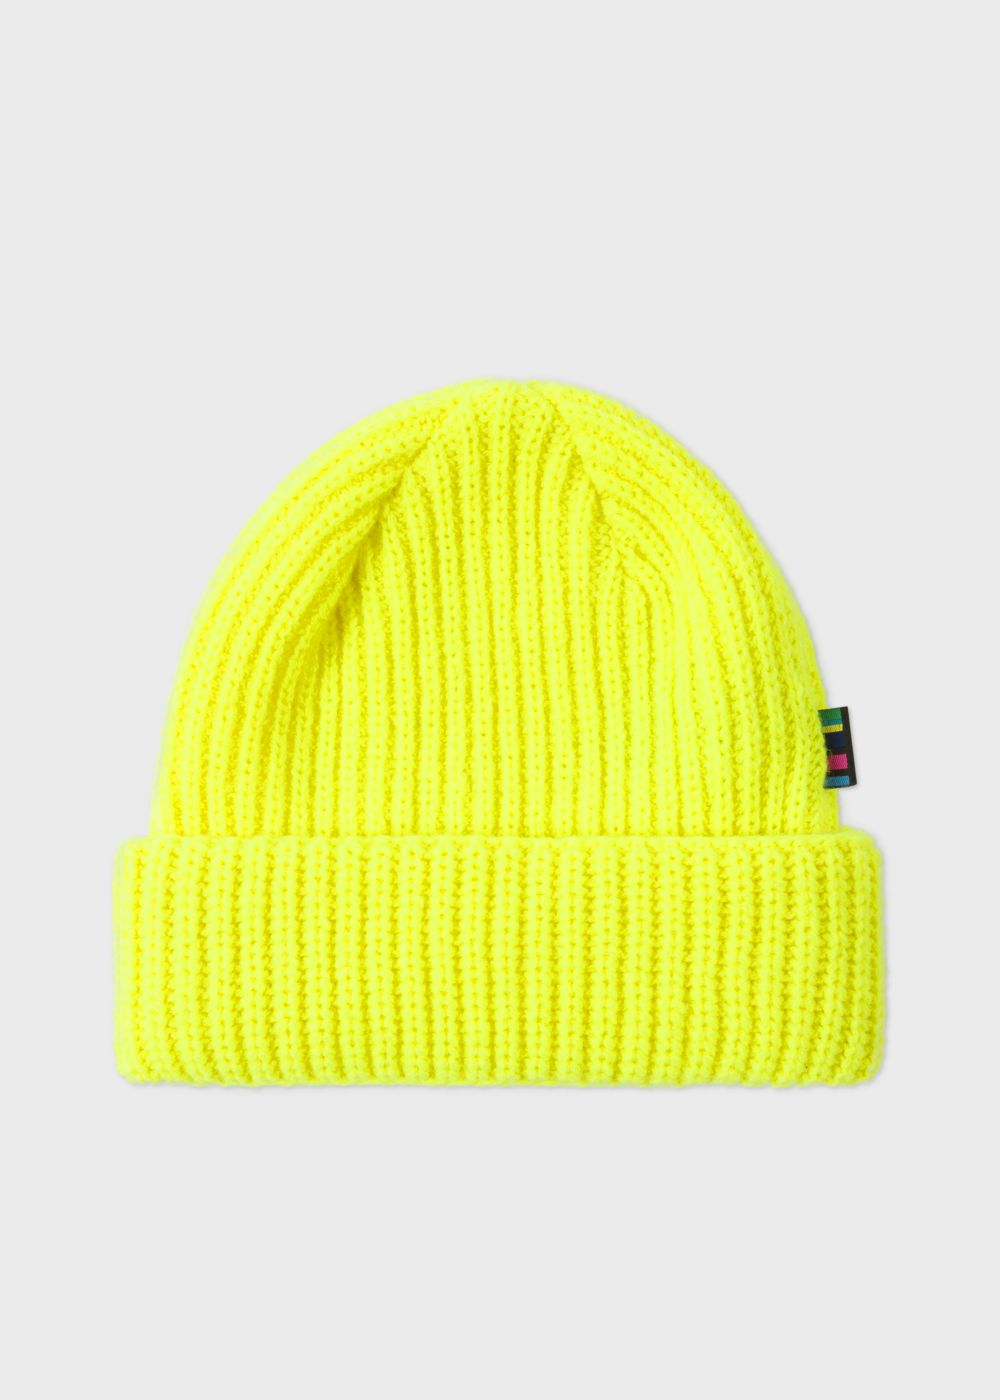 Men s Neon Yellow Wool Beanie Hat by Paul... — Thread d927c3219f3